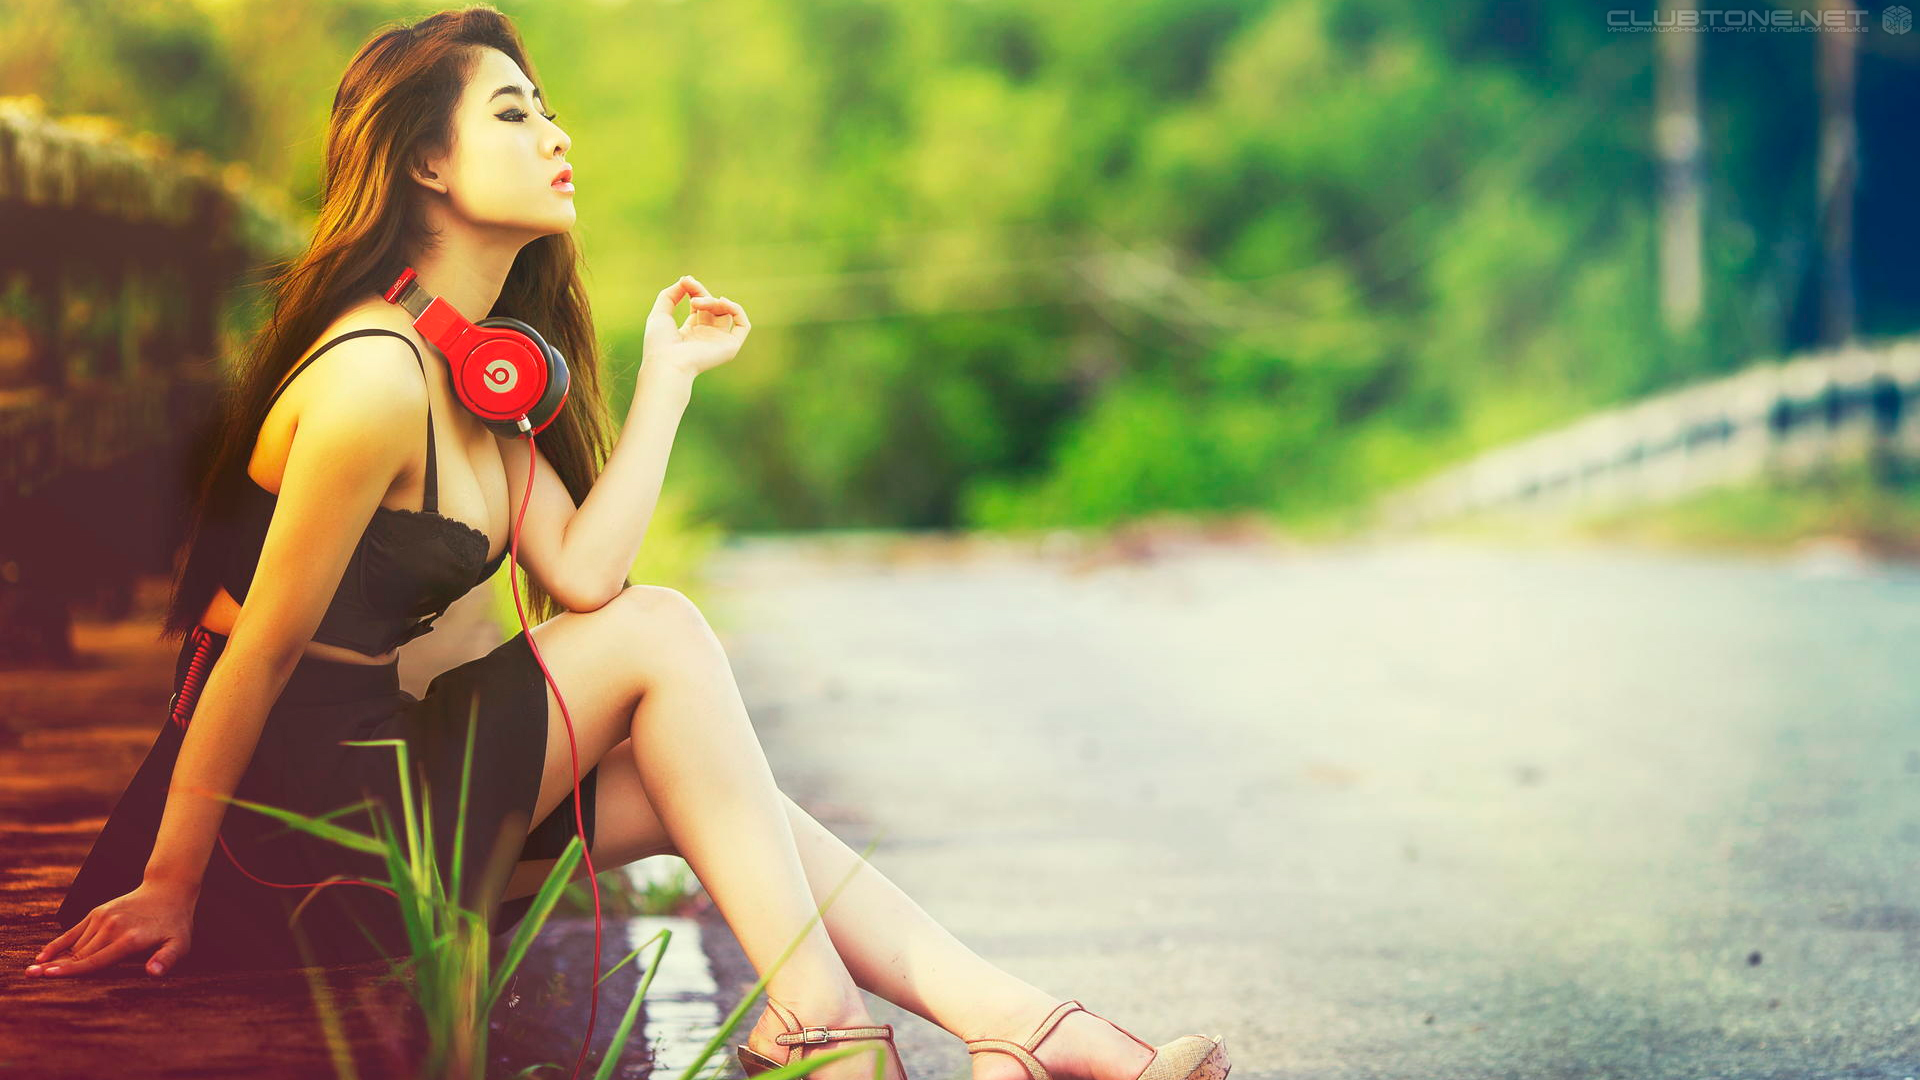 thai girl with headphones 2